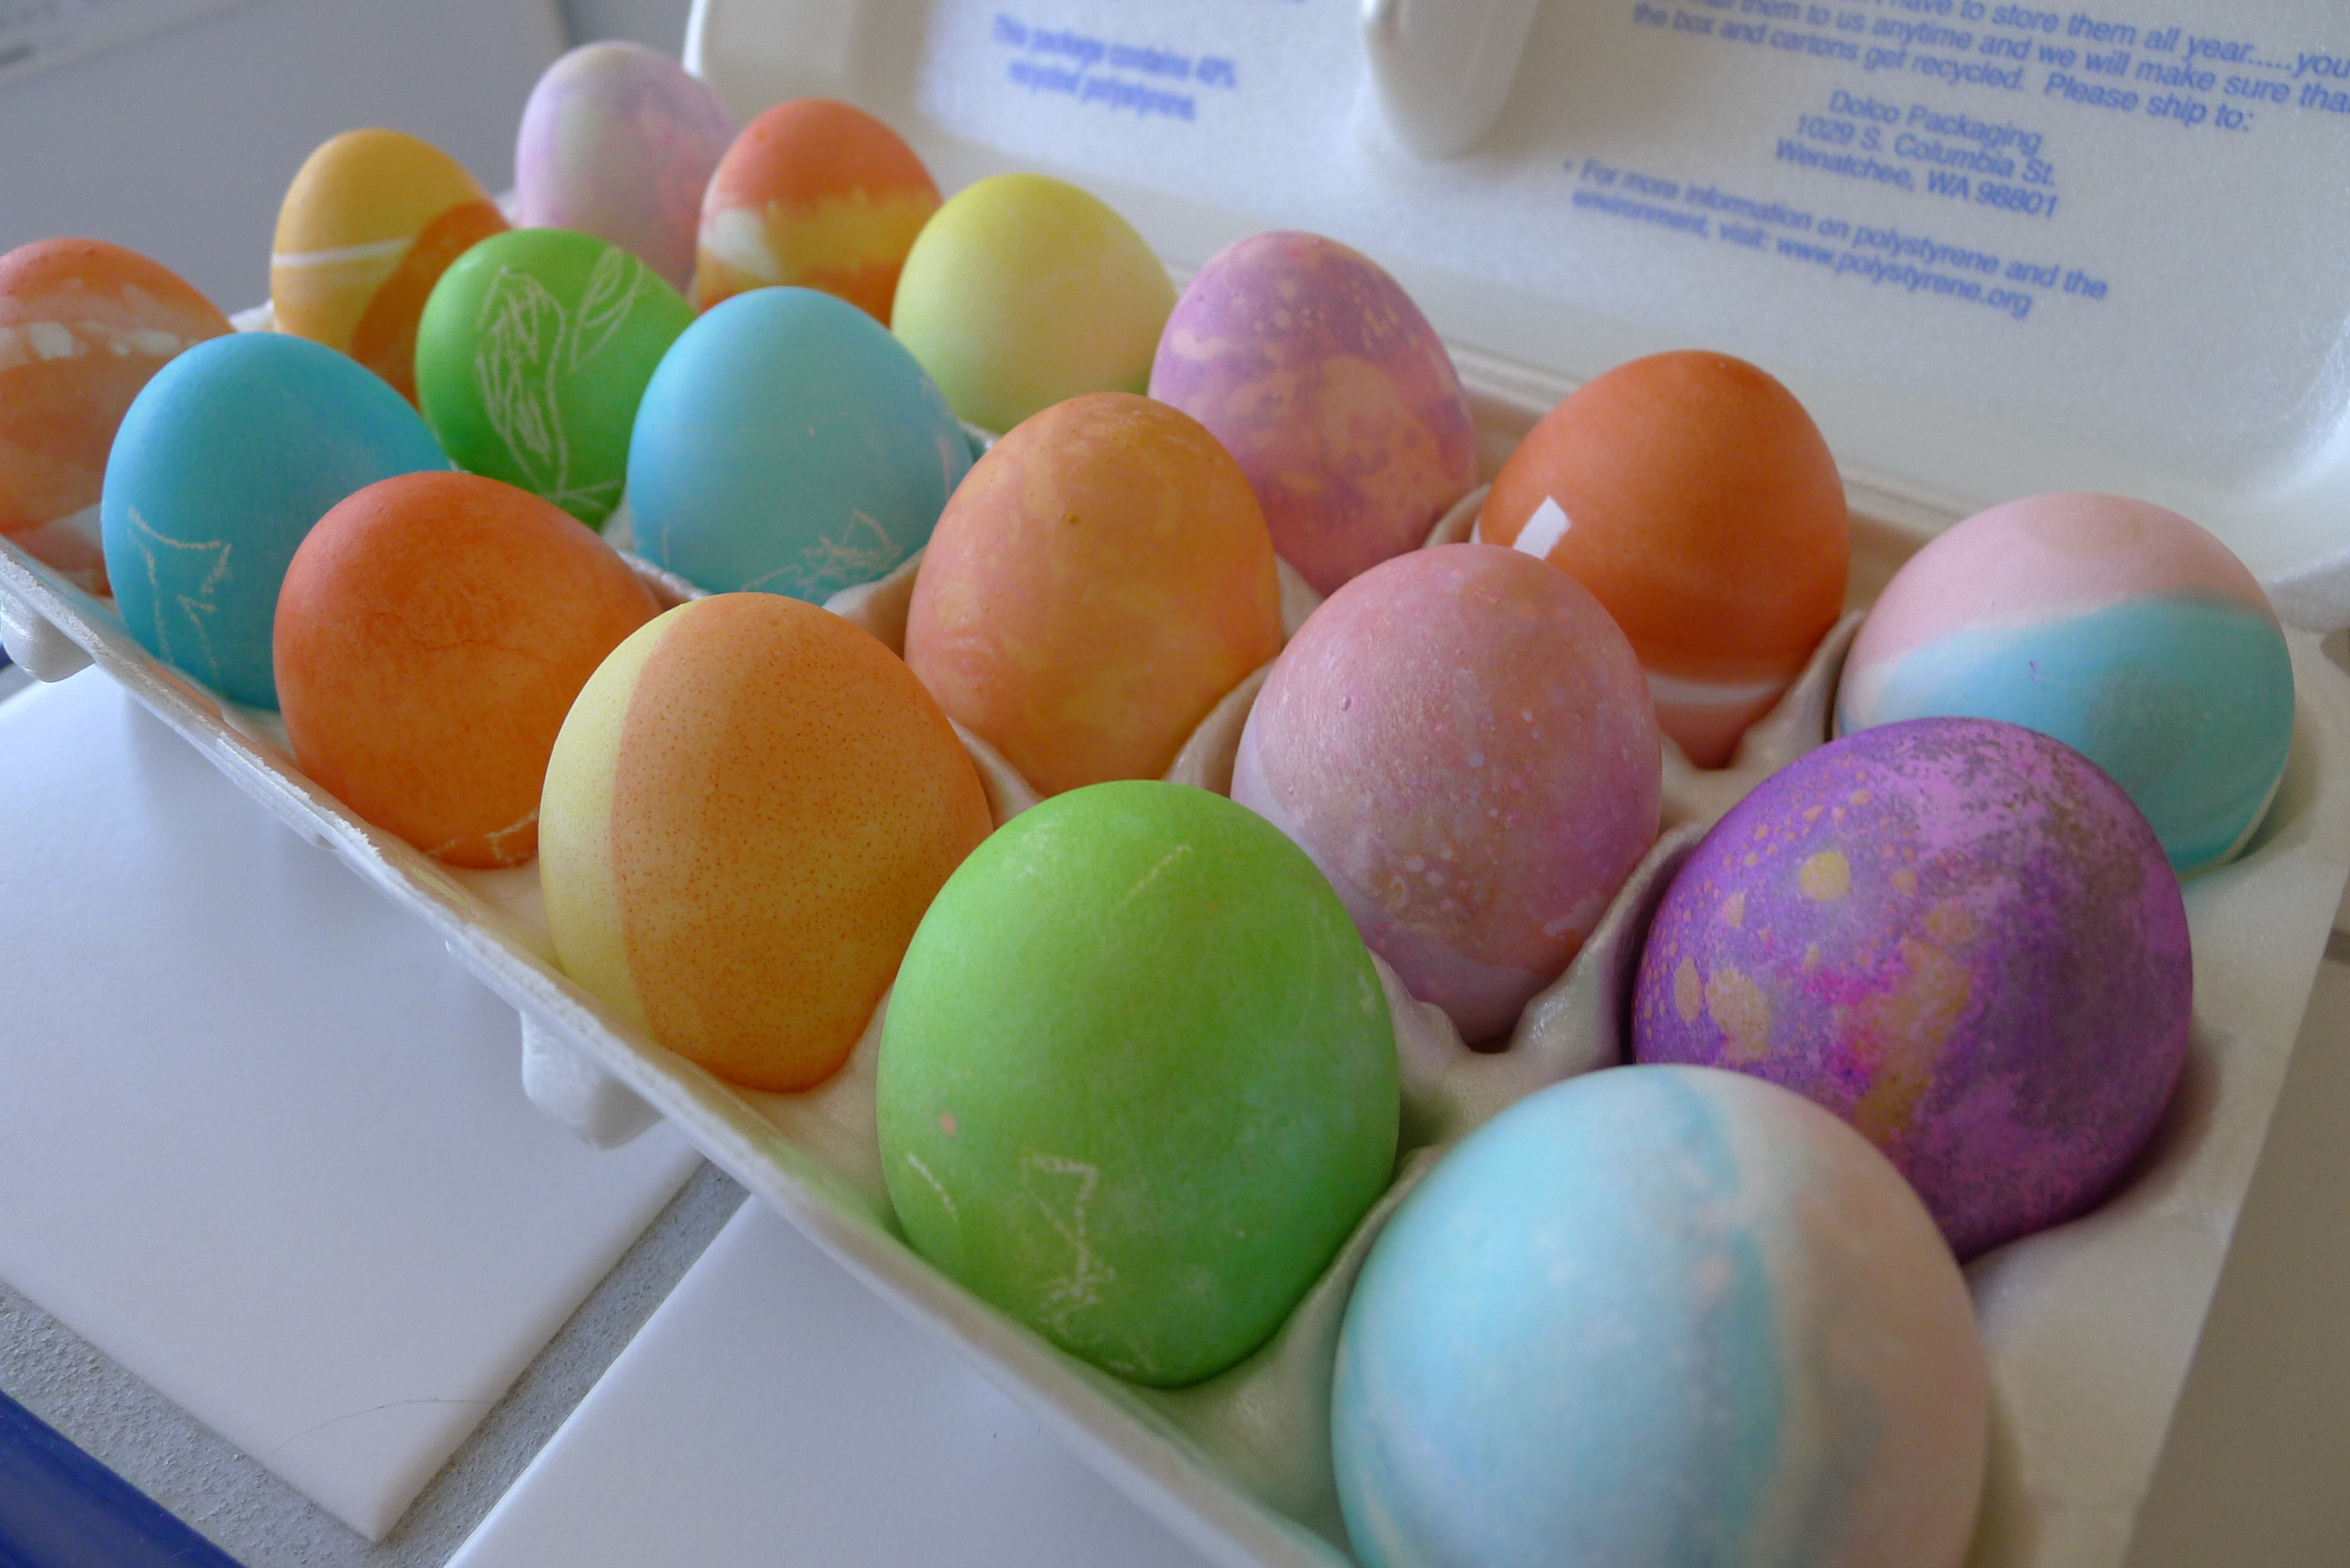 just a few of the Easter eggs we dyed